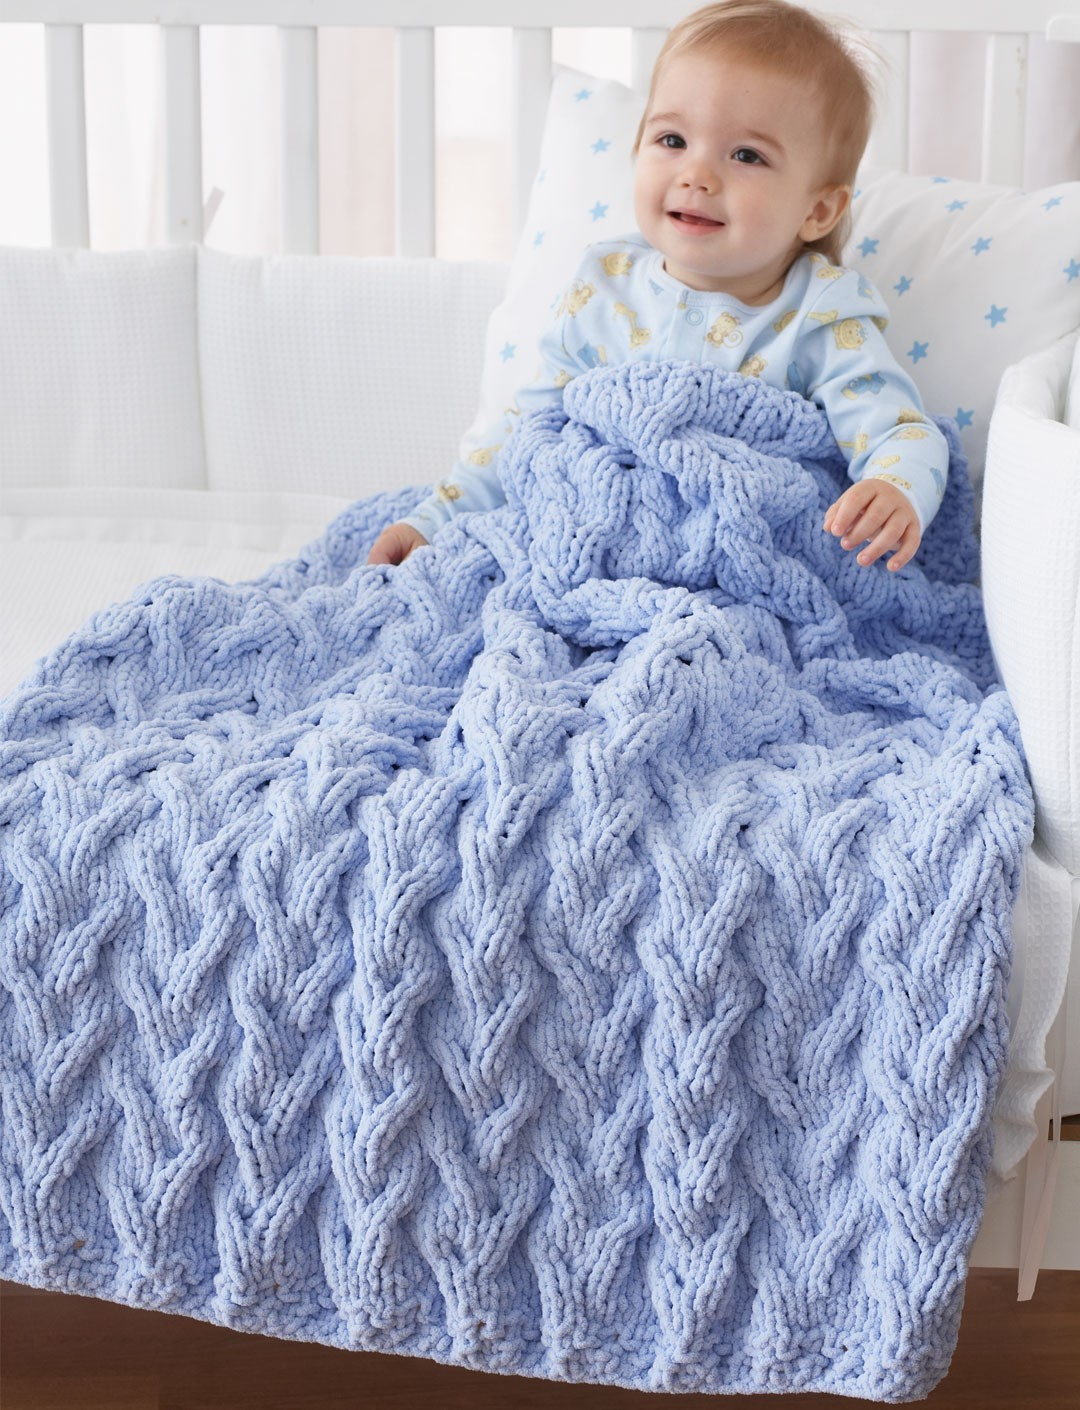 Best Products to Make with the Chunky Yarn Crochet Pattern Ba Blanket Knitting Patterns Bulky Yarn